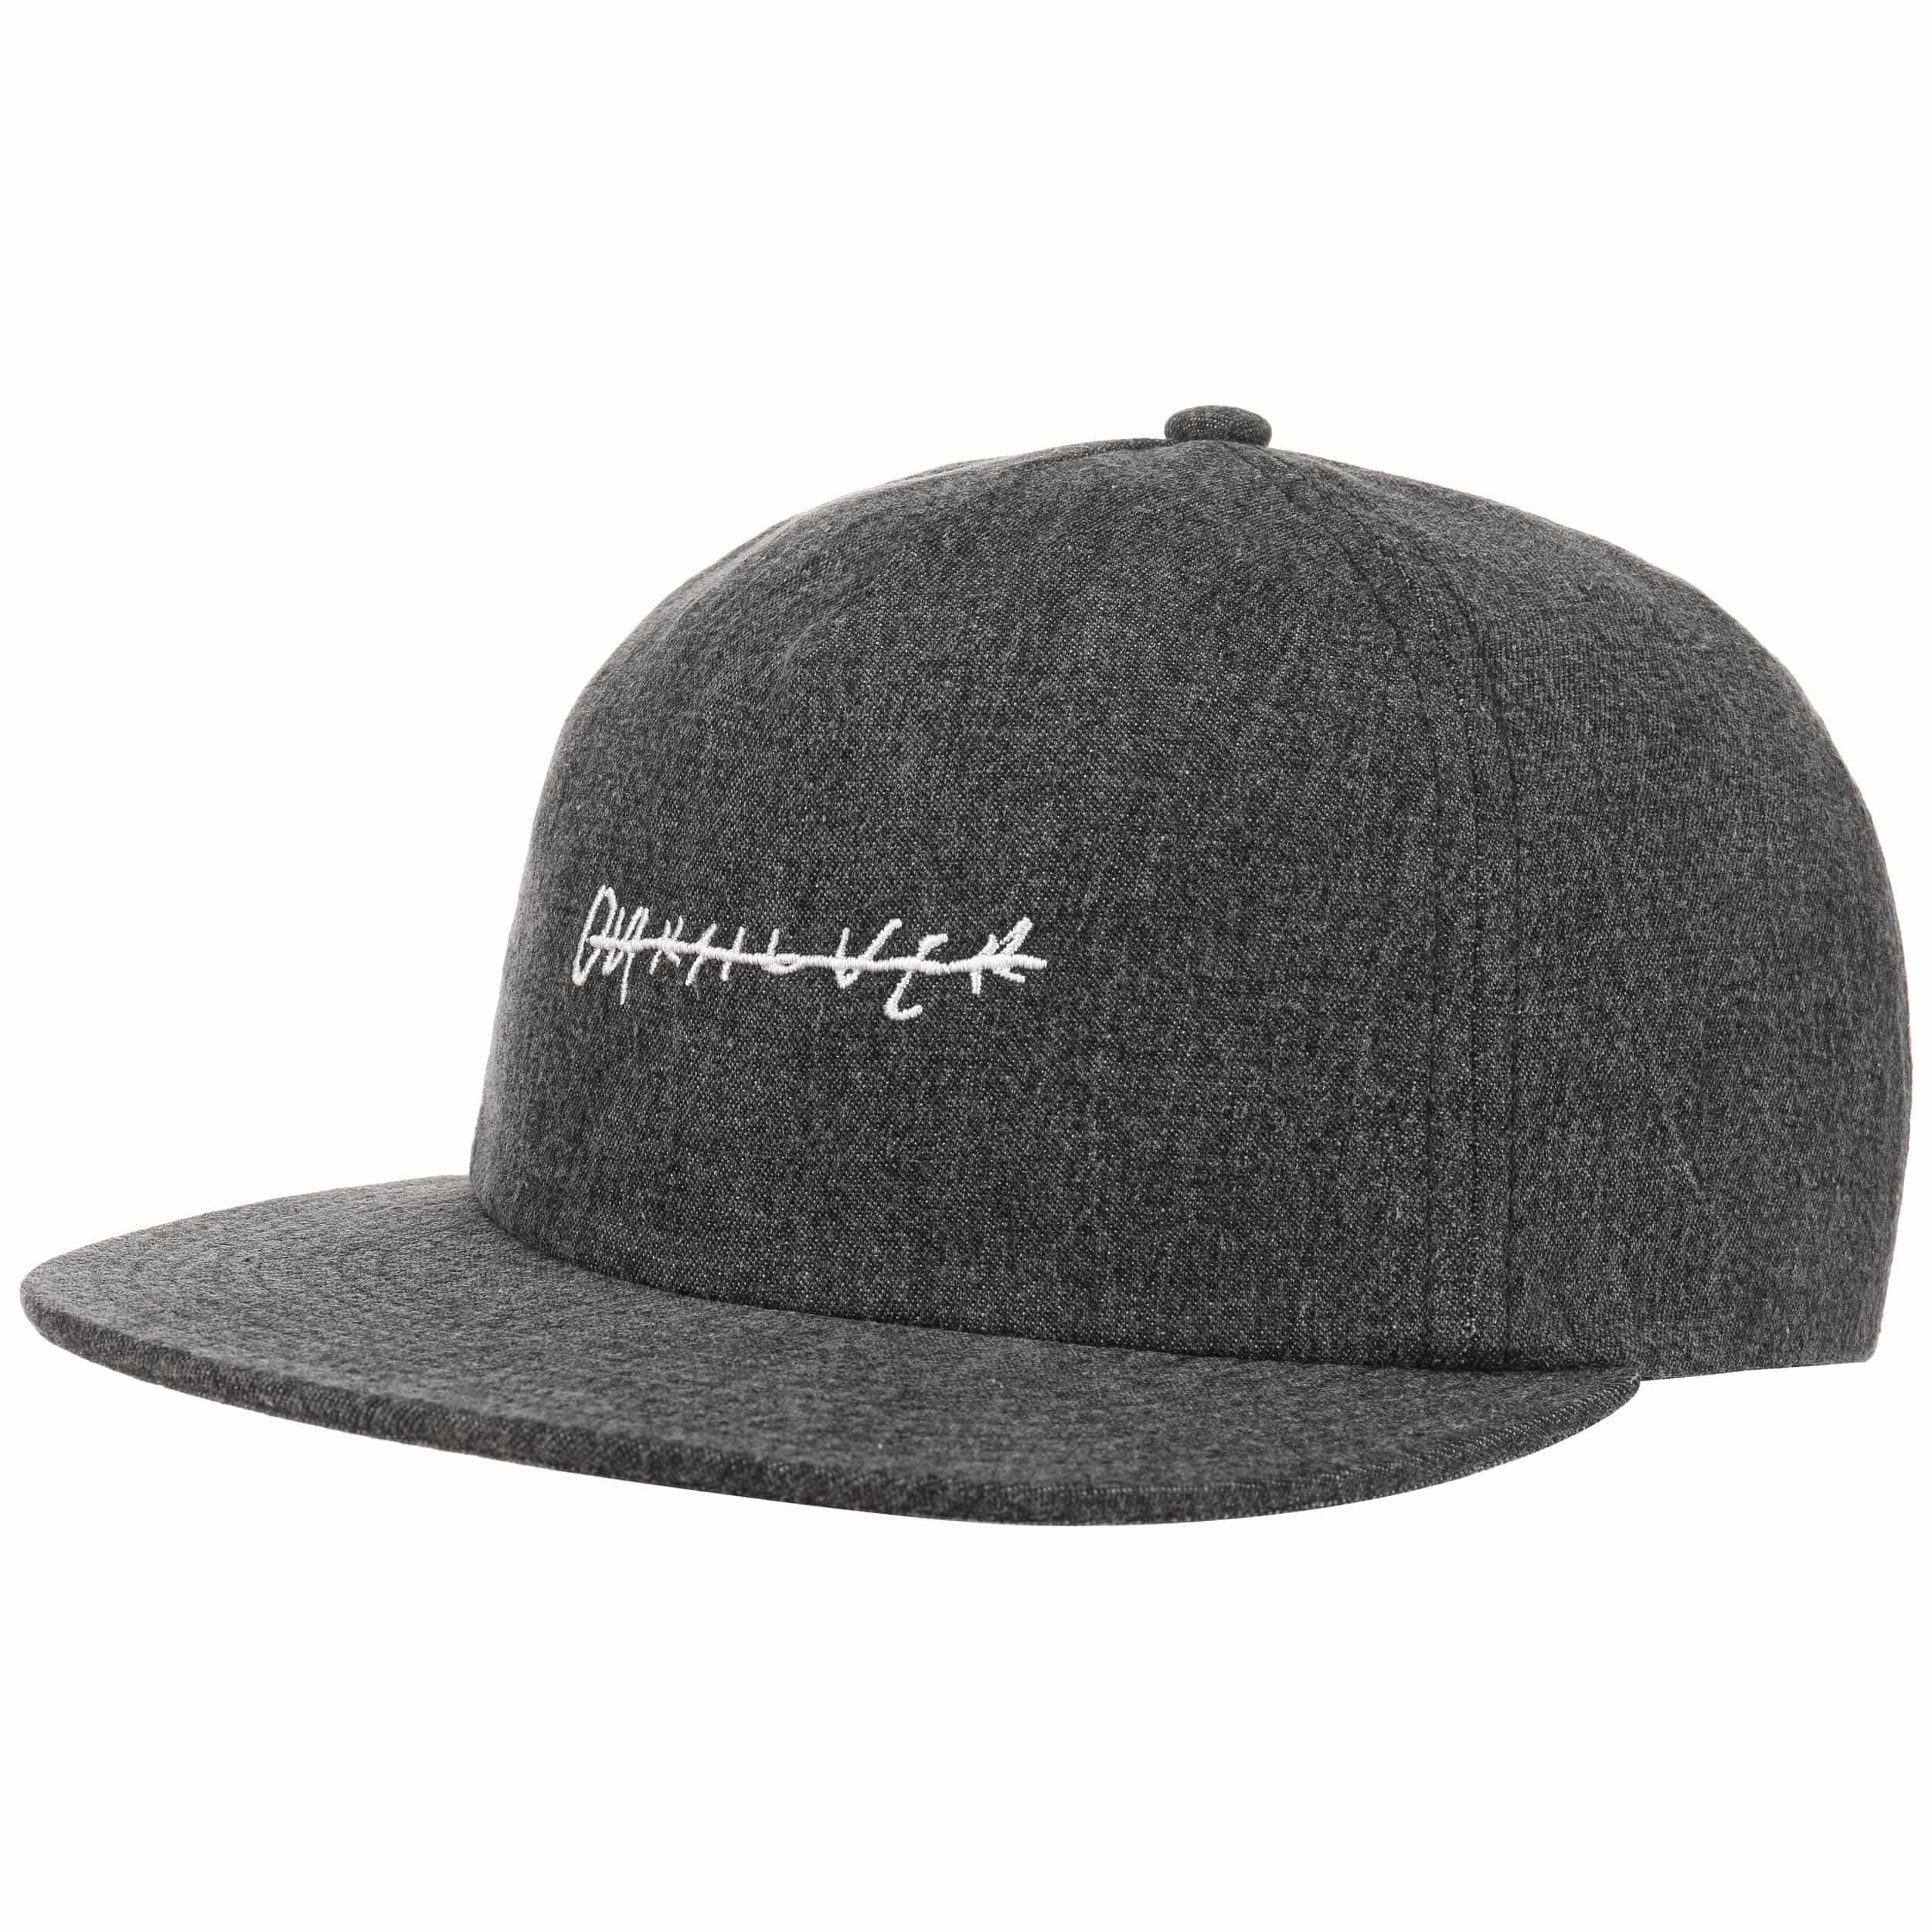 Pinches Snapback Cap By Quiksilver 26 95